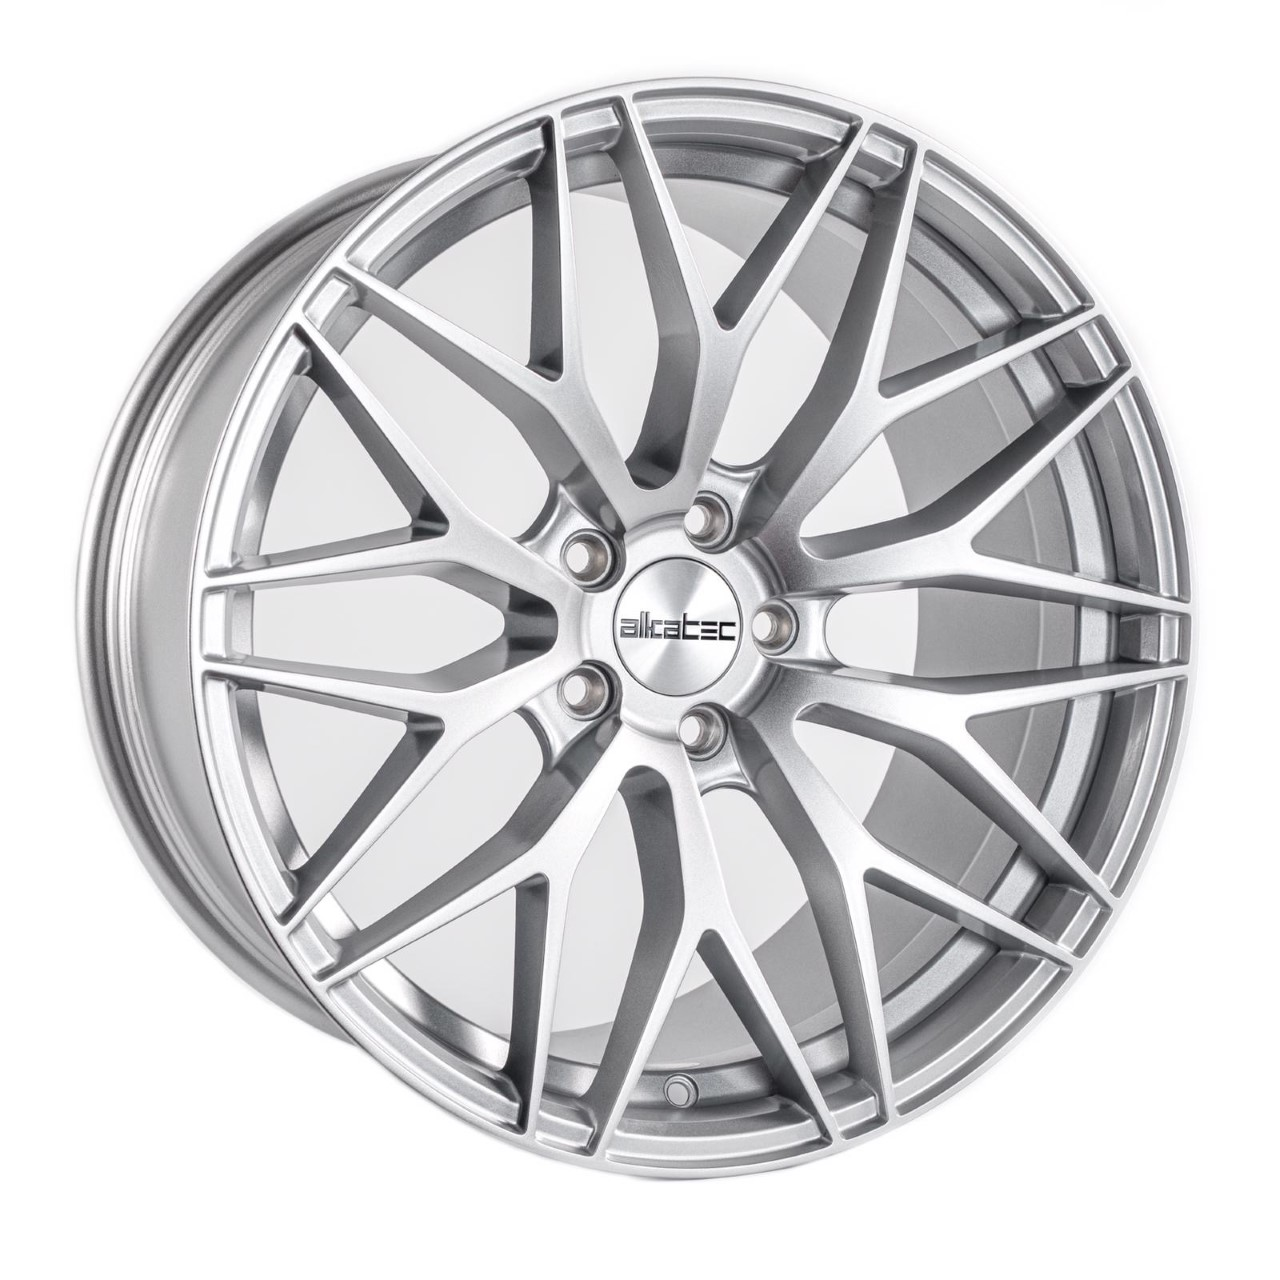 "NEW 19"" ALKATEC EVO-1 ALLOY WHEELS IN SILVER, WIDER 9.5"" REARS ET35/40"